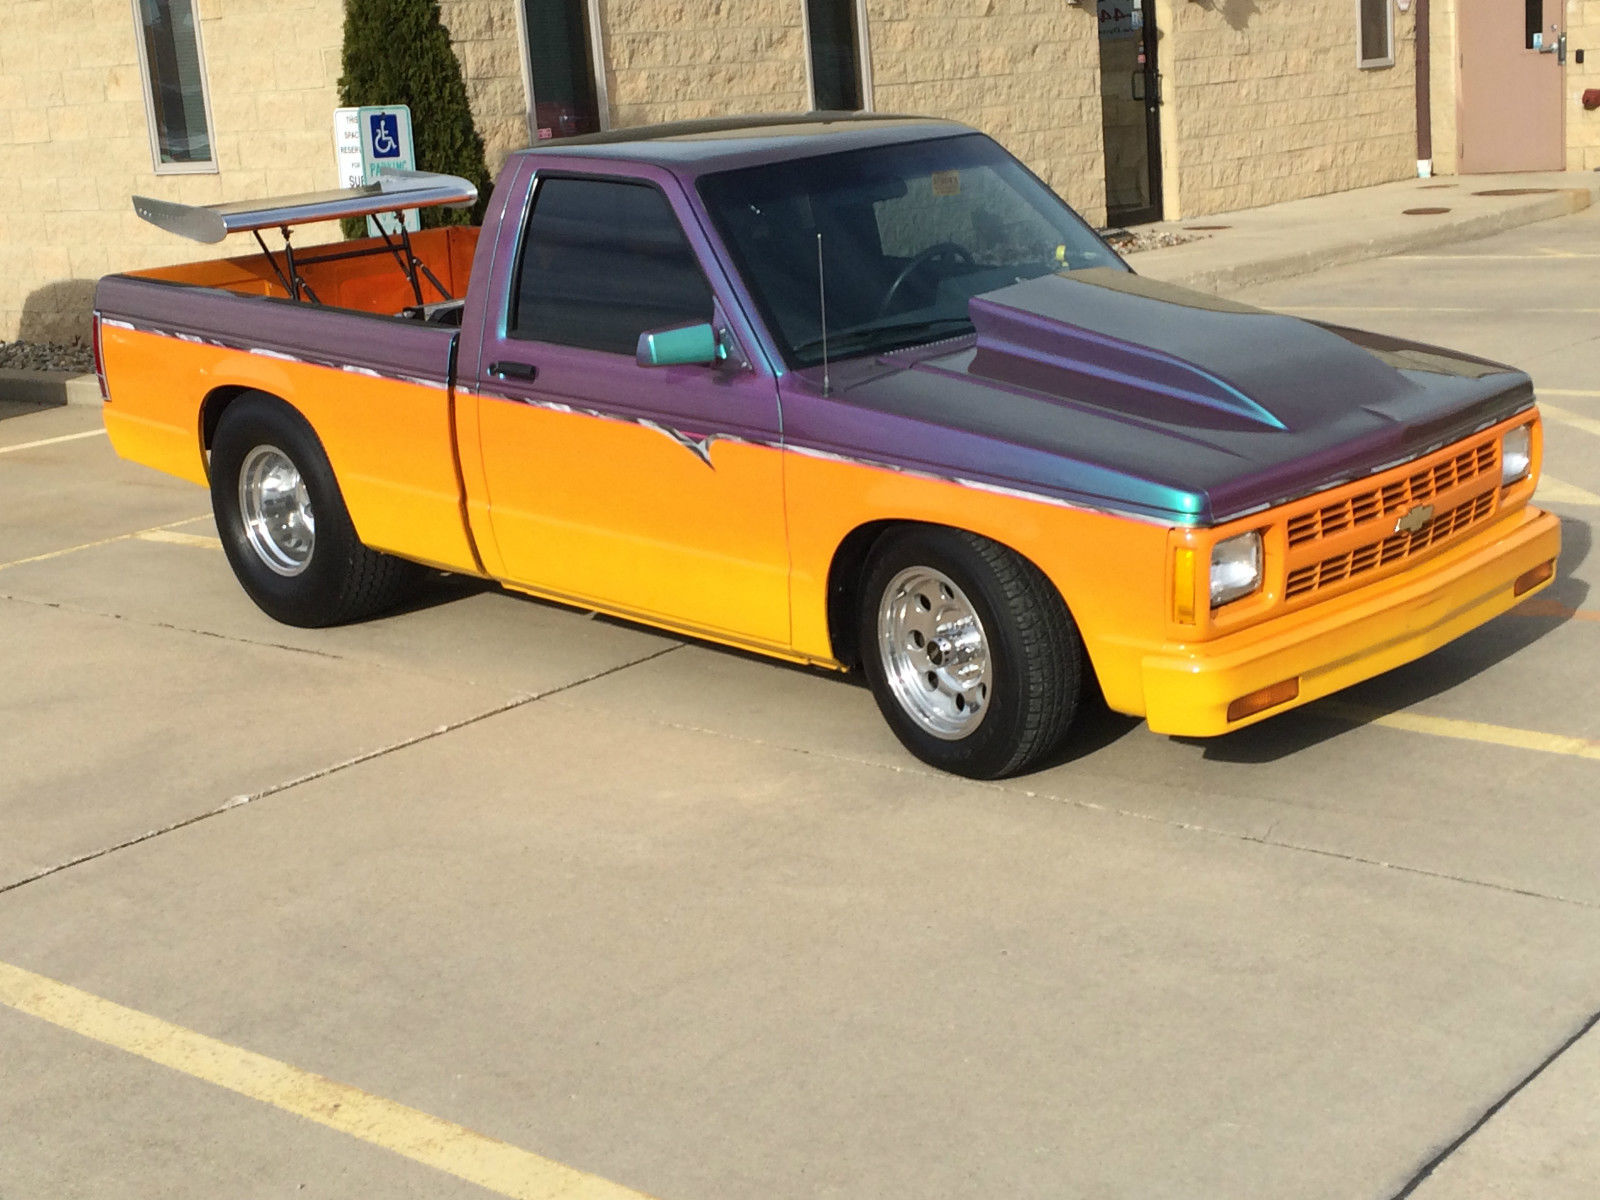 Chevy S10 Pick-up Truck - Pro Street - Fantastic Paint! Narrowed